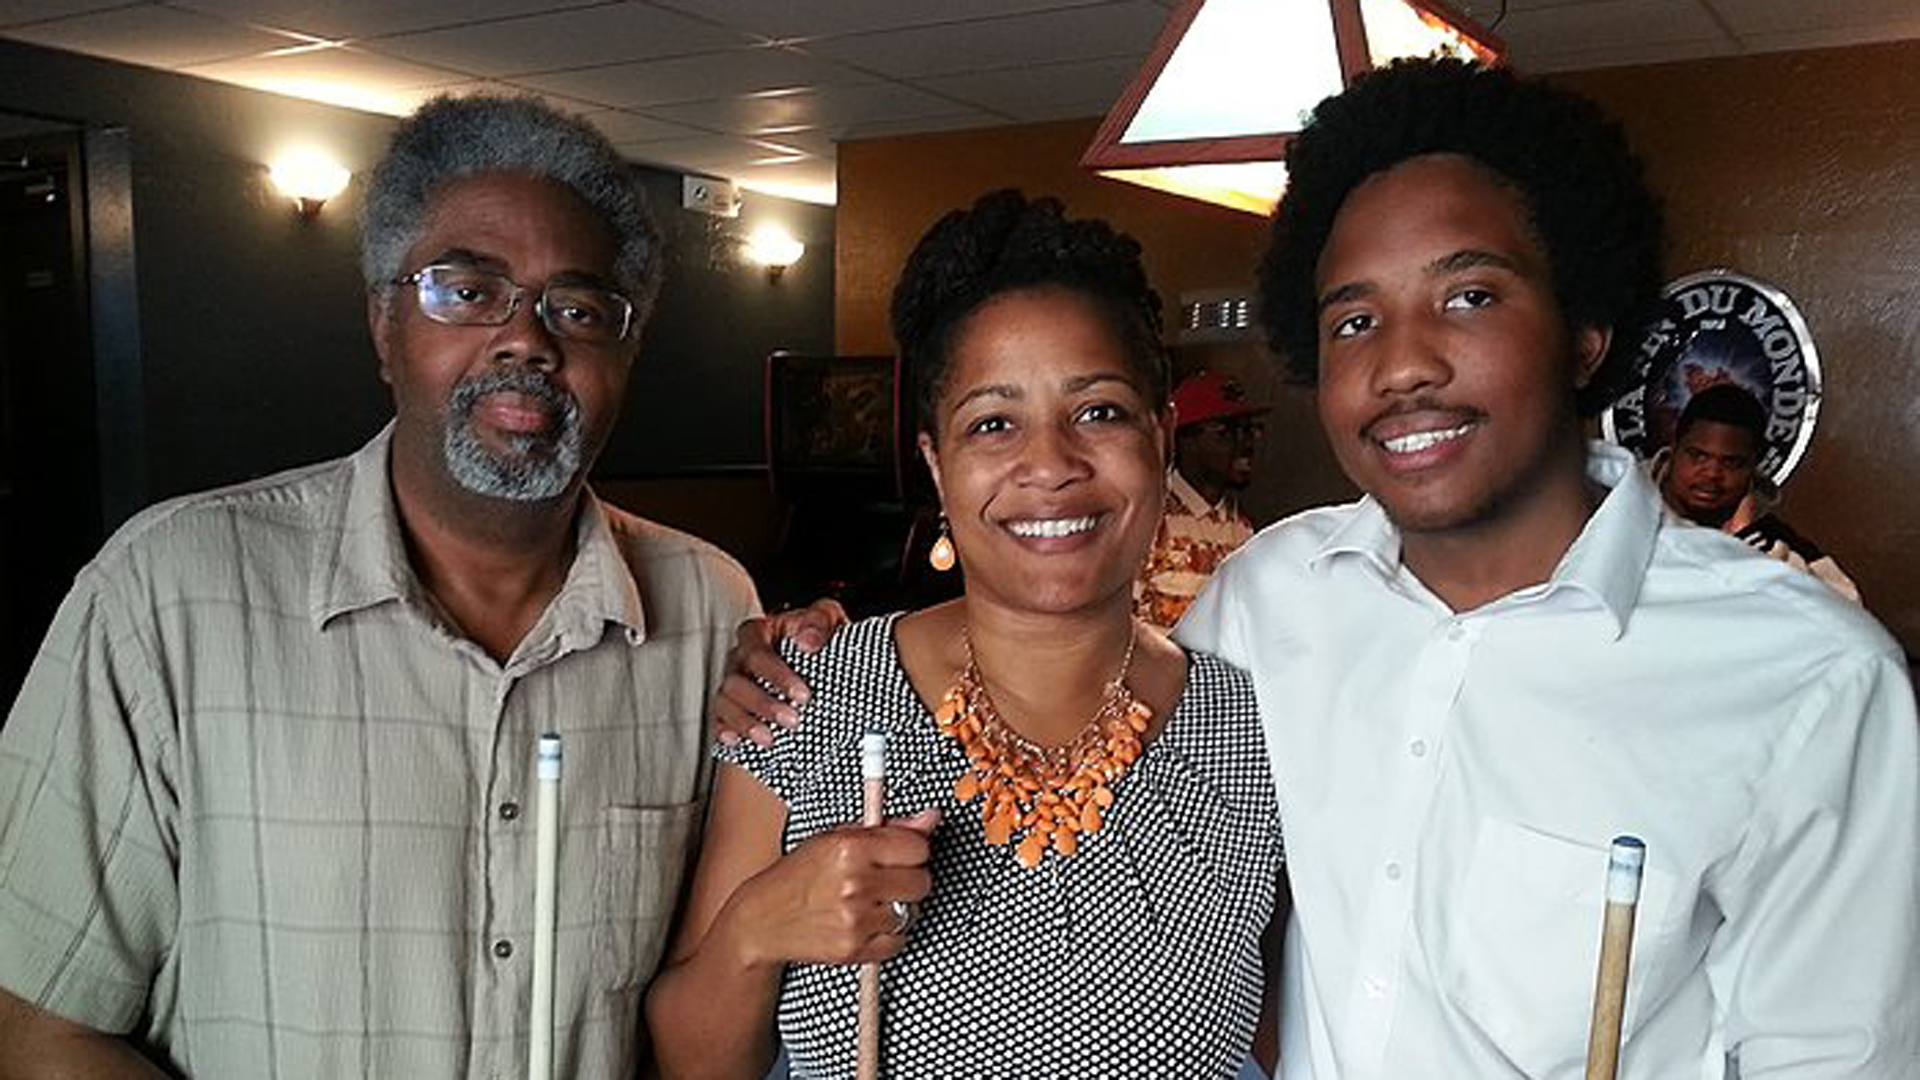 Victor McElhaney (right) Celebrating his 21st Birthday with his mom Councilmember Lynette McElhaney (center) and father Clarence McElhaney (left) at Luca's Taproom in Oakland. (Credit: City of Oakland)